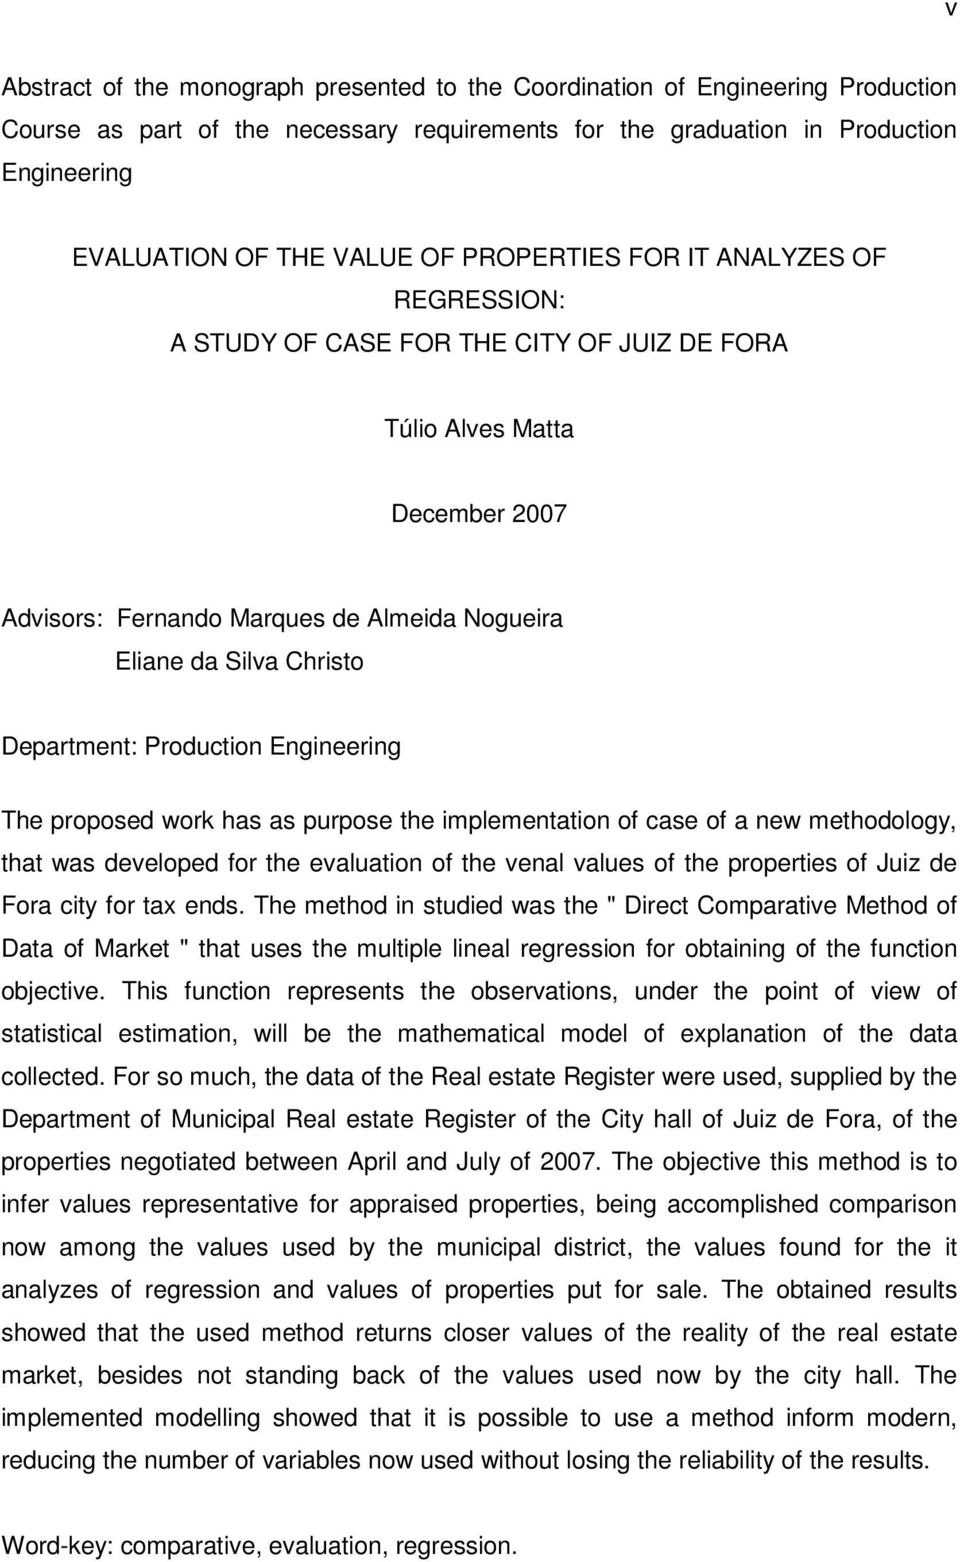 Producton Engneerng The proposed work has as purpose the mplementaton of case of a new methodology, that was developed for the evaluaton of the venal values of the propertes of Juz de Fora cty for